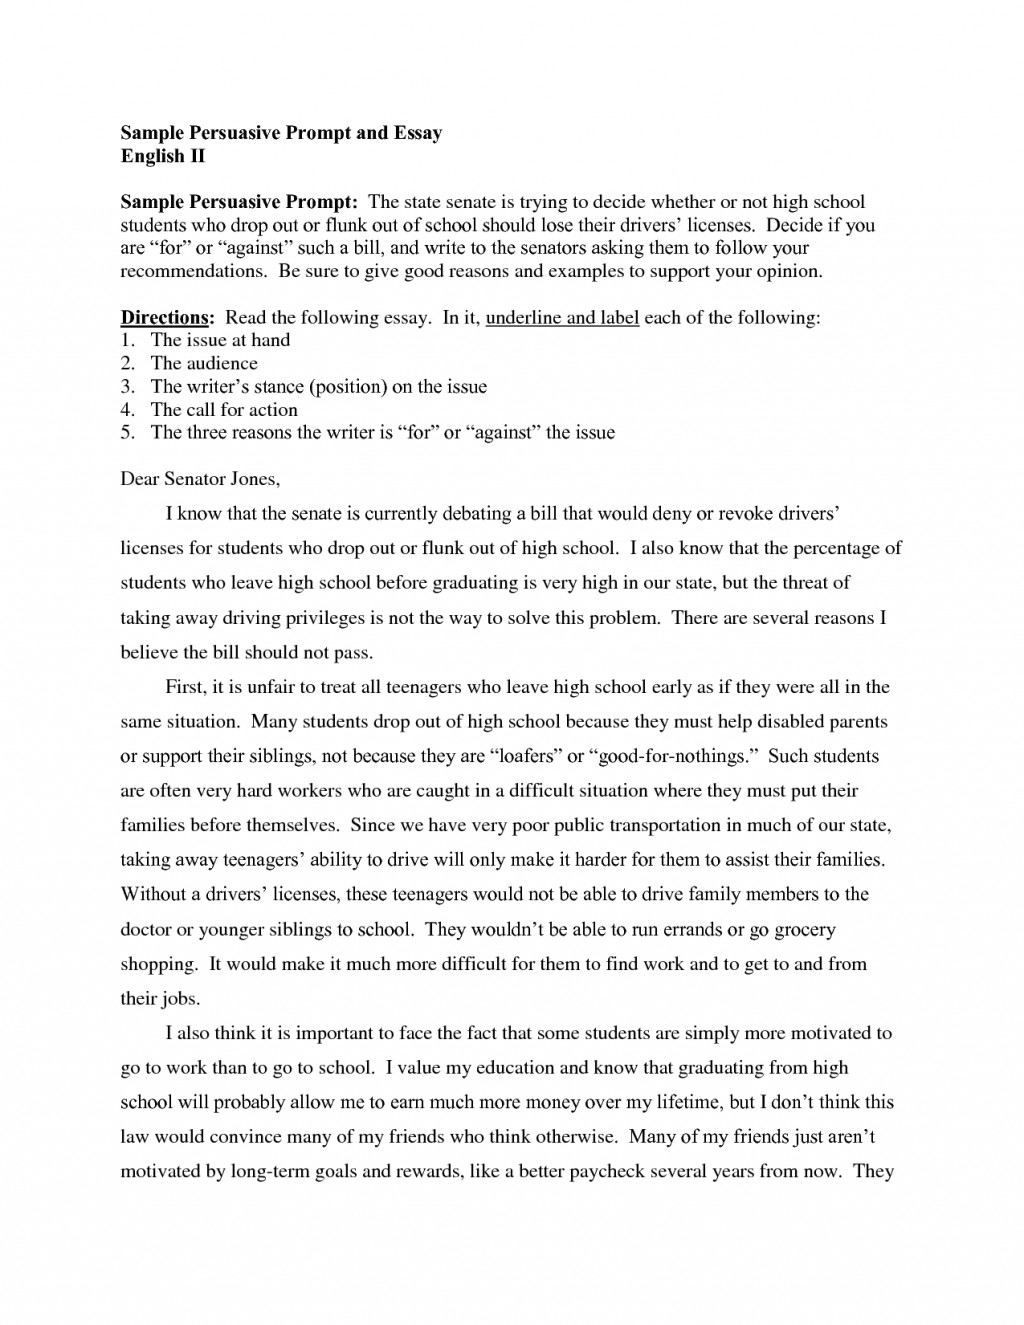 013 Research Paper Easy Topic Persuasive Essay Topics For High School Sample Ideas Highschool Students Good Prompt Funny Fun List Of Seniors Writing English Sensational Psychology Biology Large